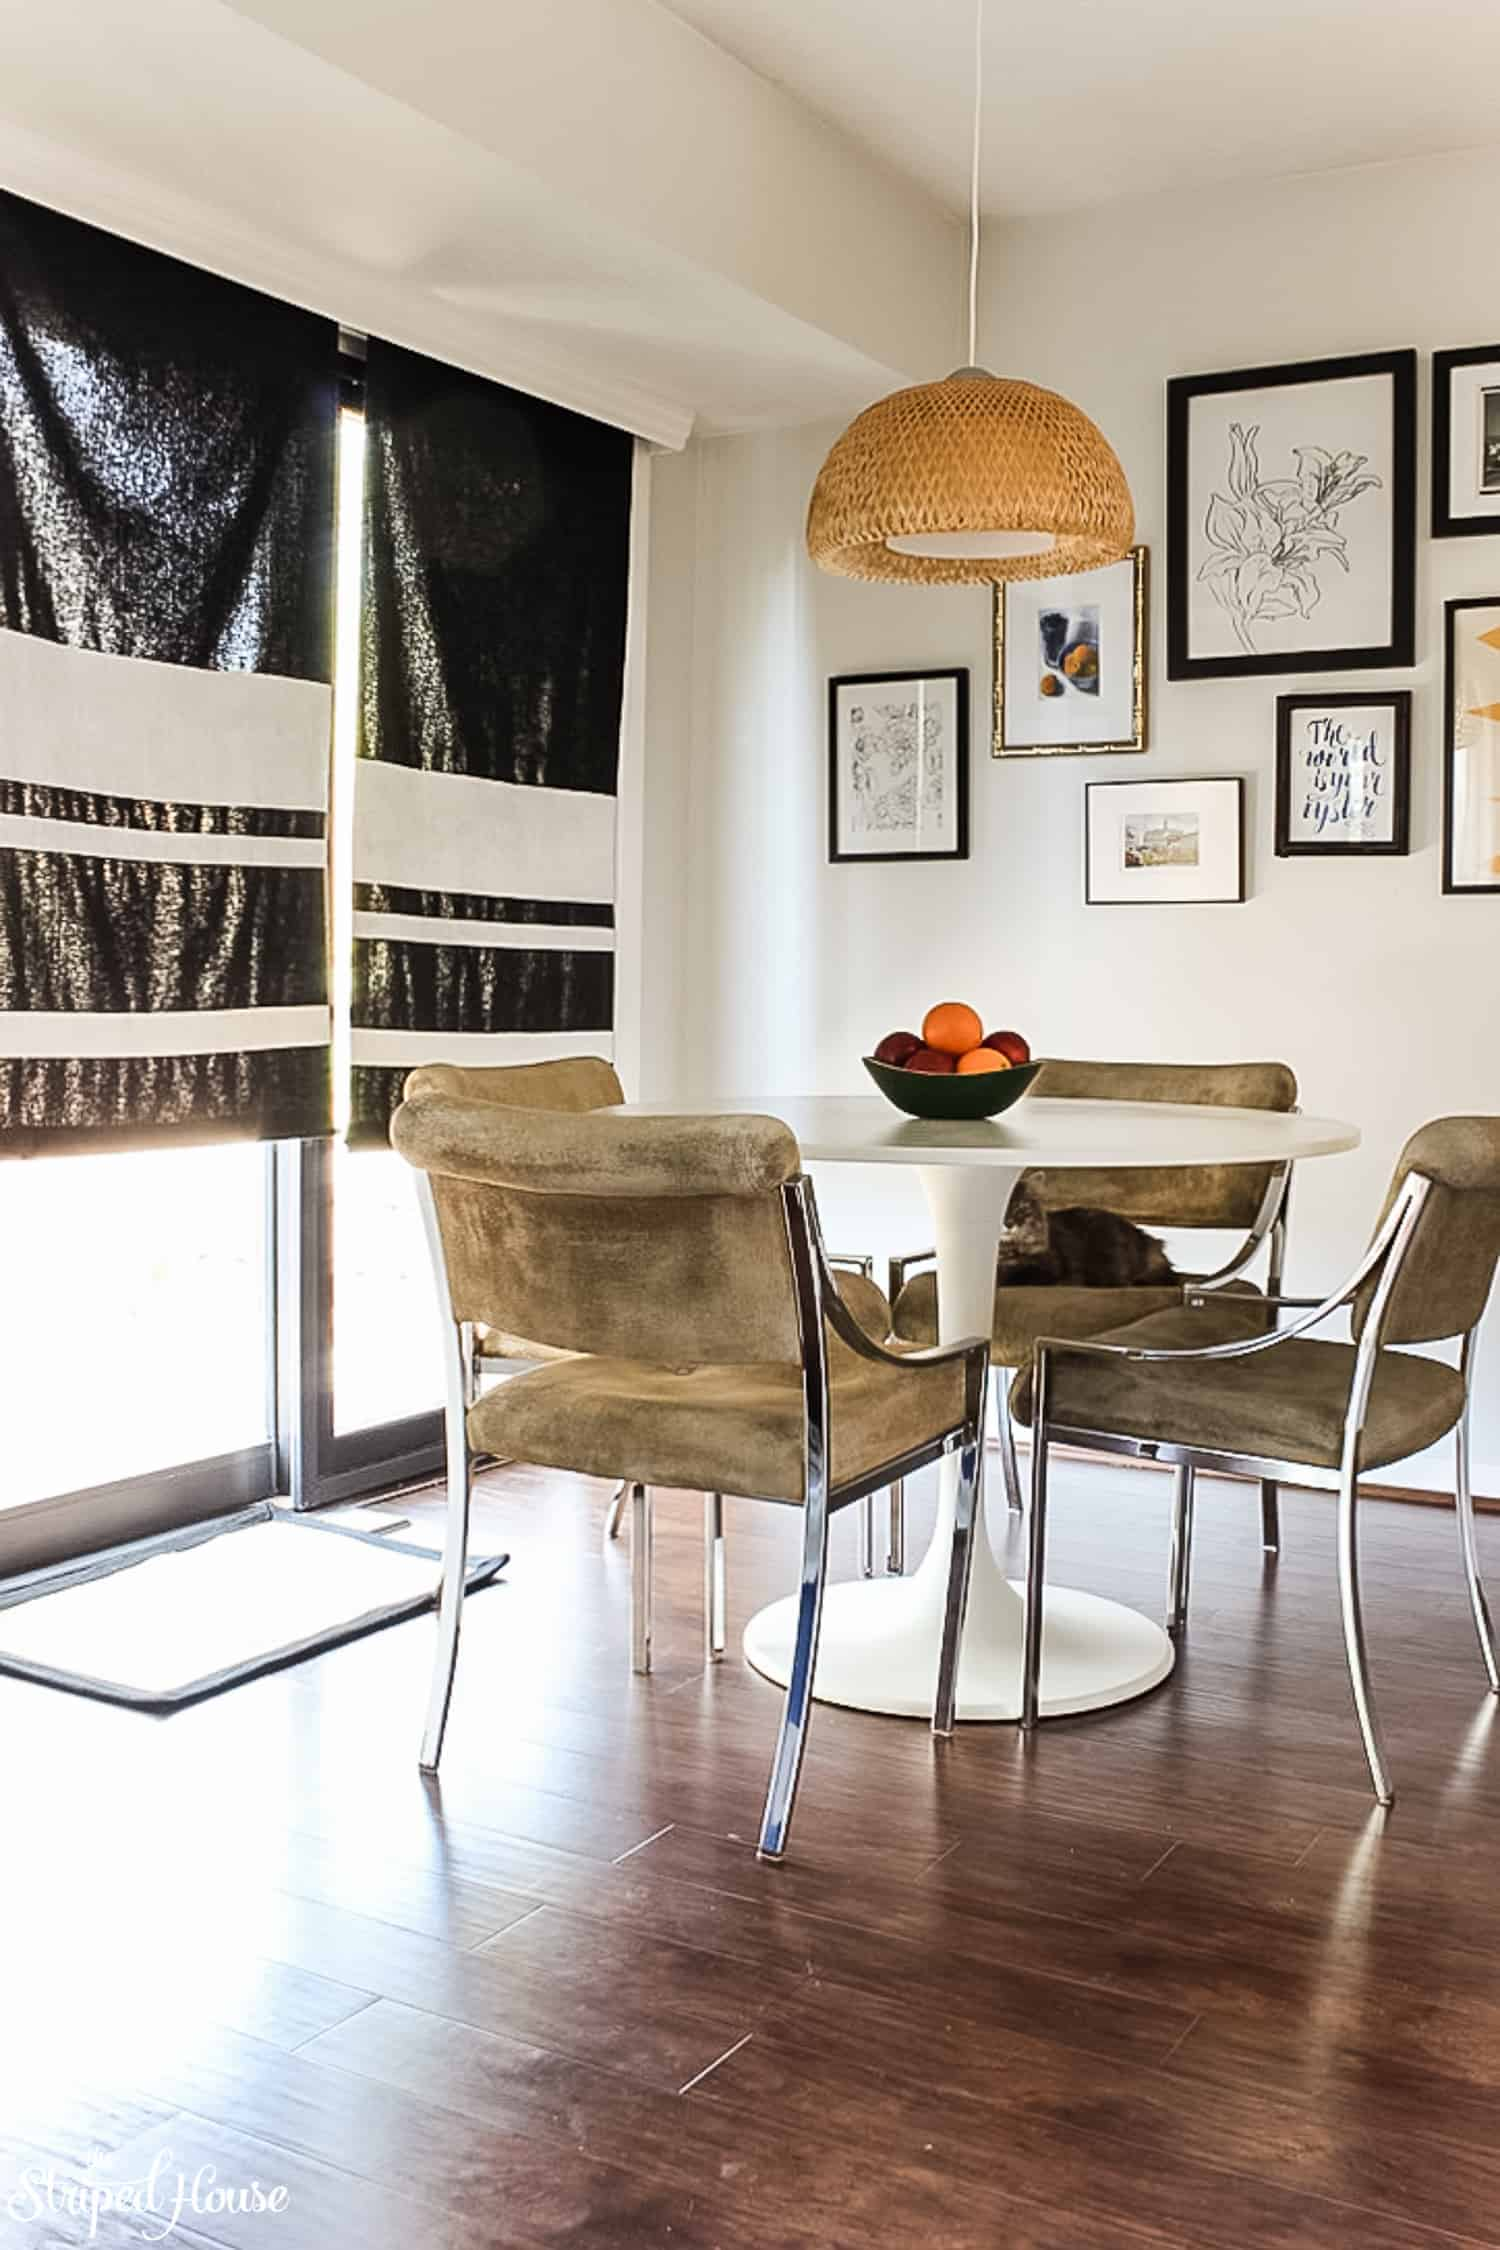 In six short weeks, I DIY'ed the eating area of my black and white traditional, but contemporary, kitchen for the One Room Challenge.